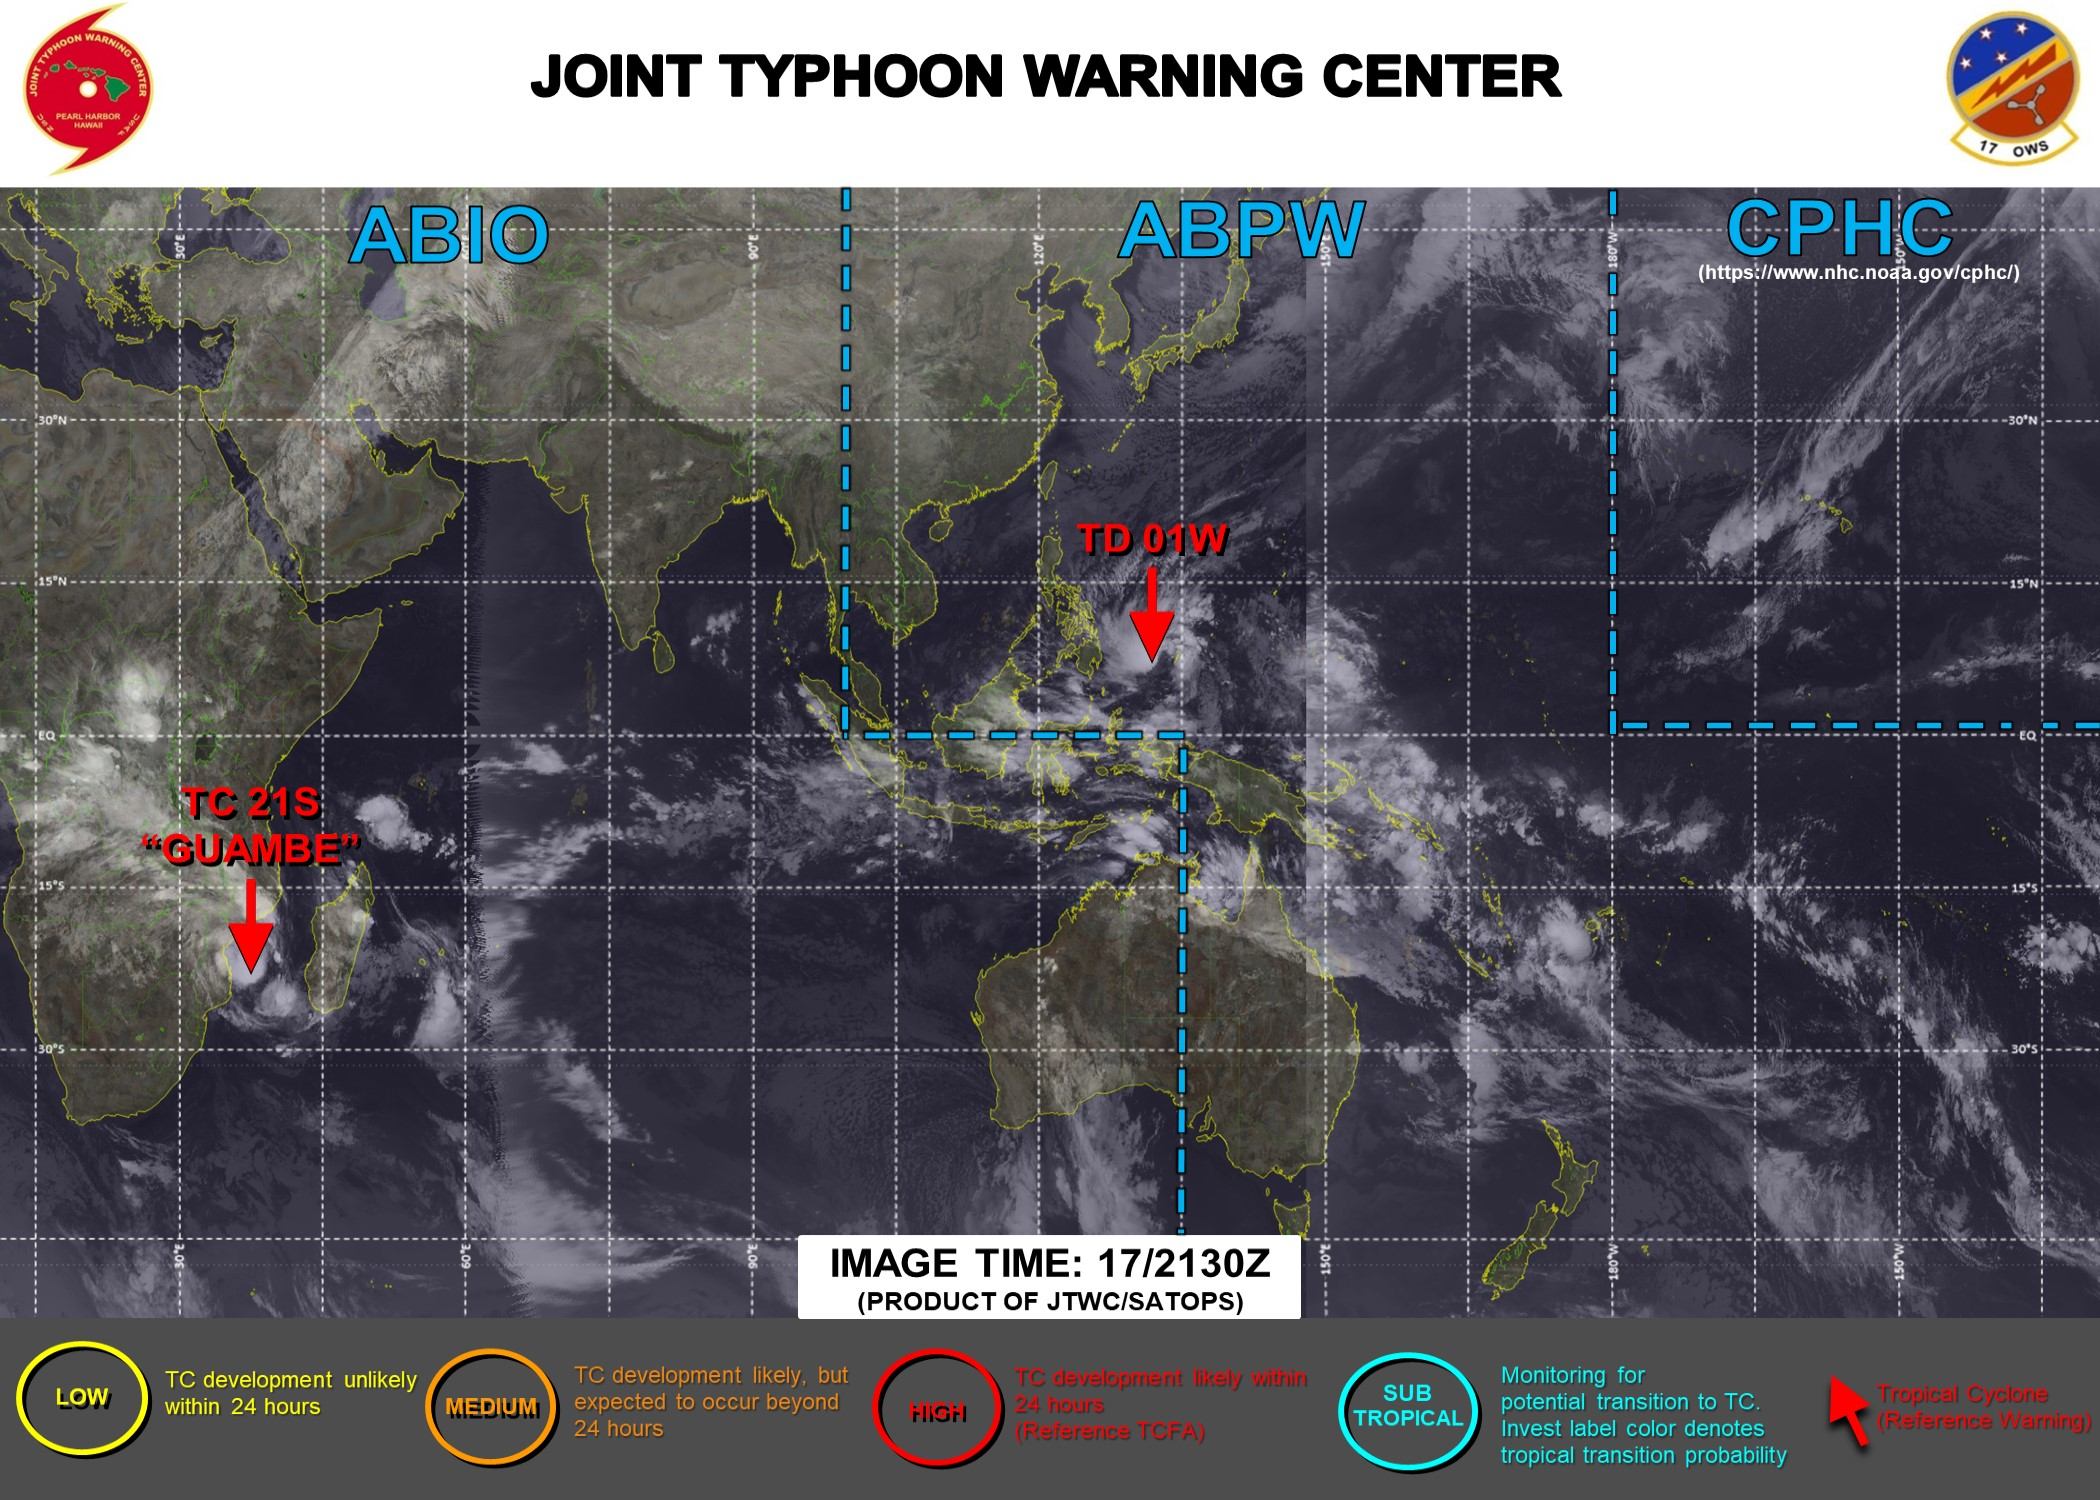 17/2130UTC. JTWC IS ISSUING 6HOURLY WARNINGS ON 01W AND 12HOURLY WARNINGS ON 21S. 3 HOURLY SATELLITE BULLETINS ARE ISSUED FOR BOTH SYSTEMS.